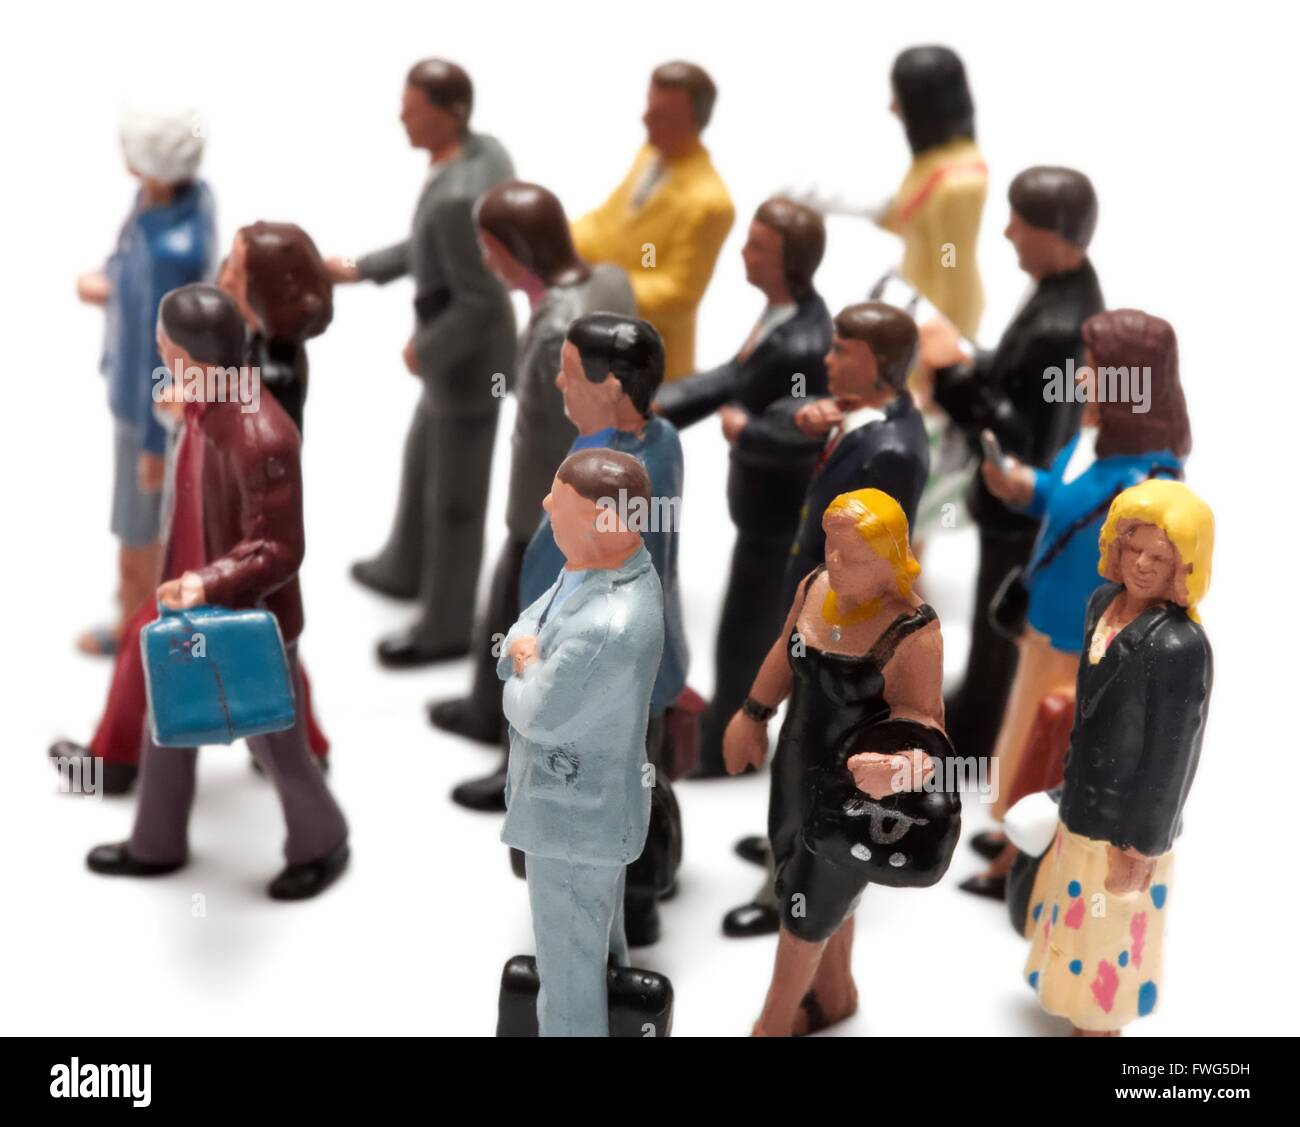 Crowdfunding concept with miniature figurines on a white background - Stock Image